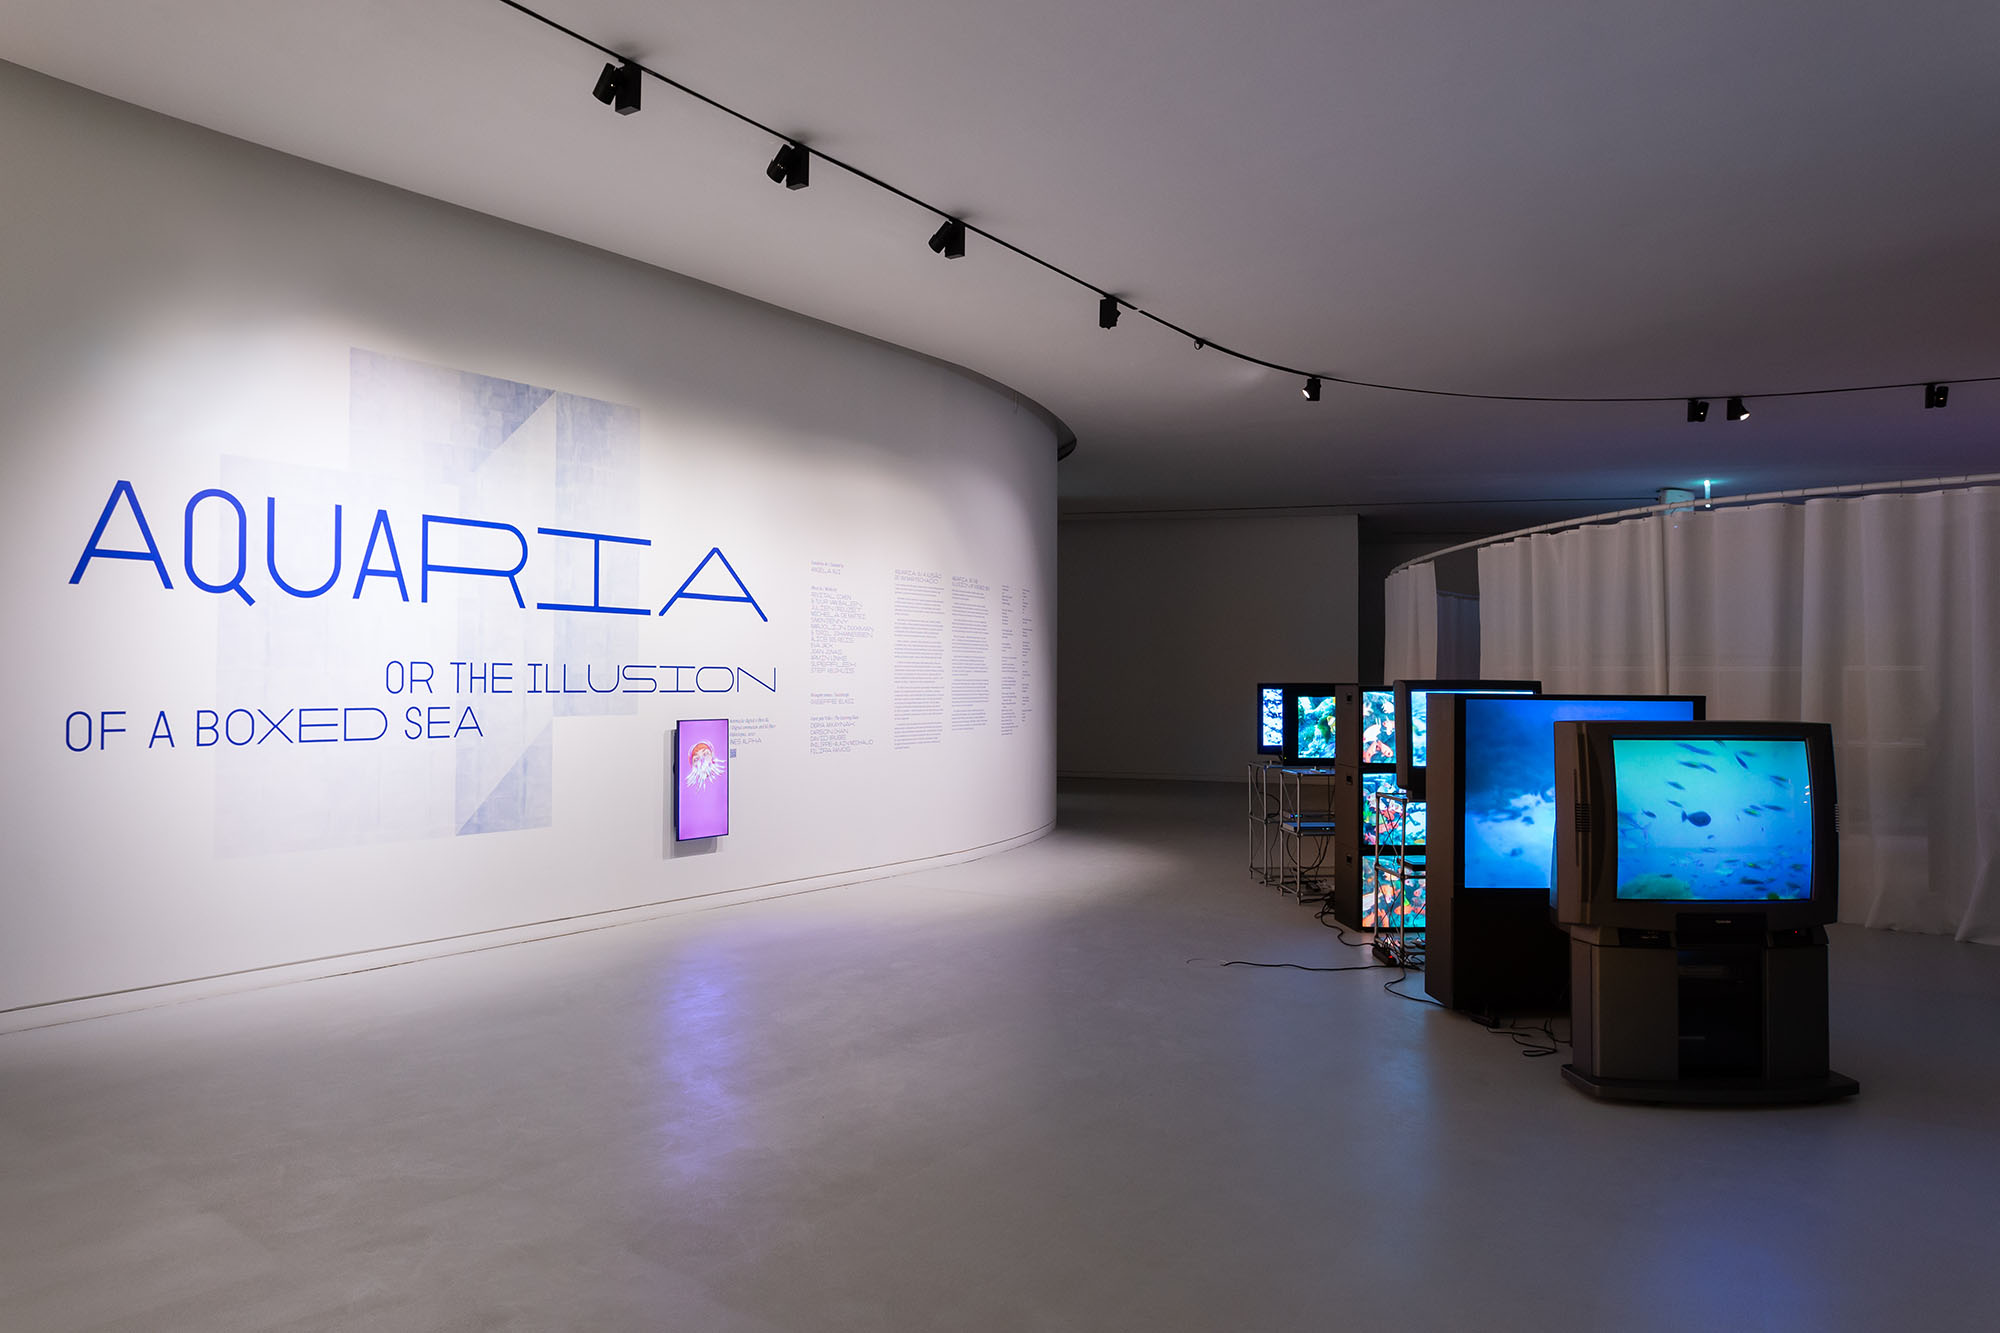 Aquaria. Or the Illusion of a Boxed Sea, installation view: Simon Denny, Deep Sea Vaudeo, 2009. maat – Museum of Art, Architecture and Technology (Lisbon), 2021 © Courtesy of EDP Foundation. Photography by Bruno Lopes.